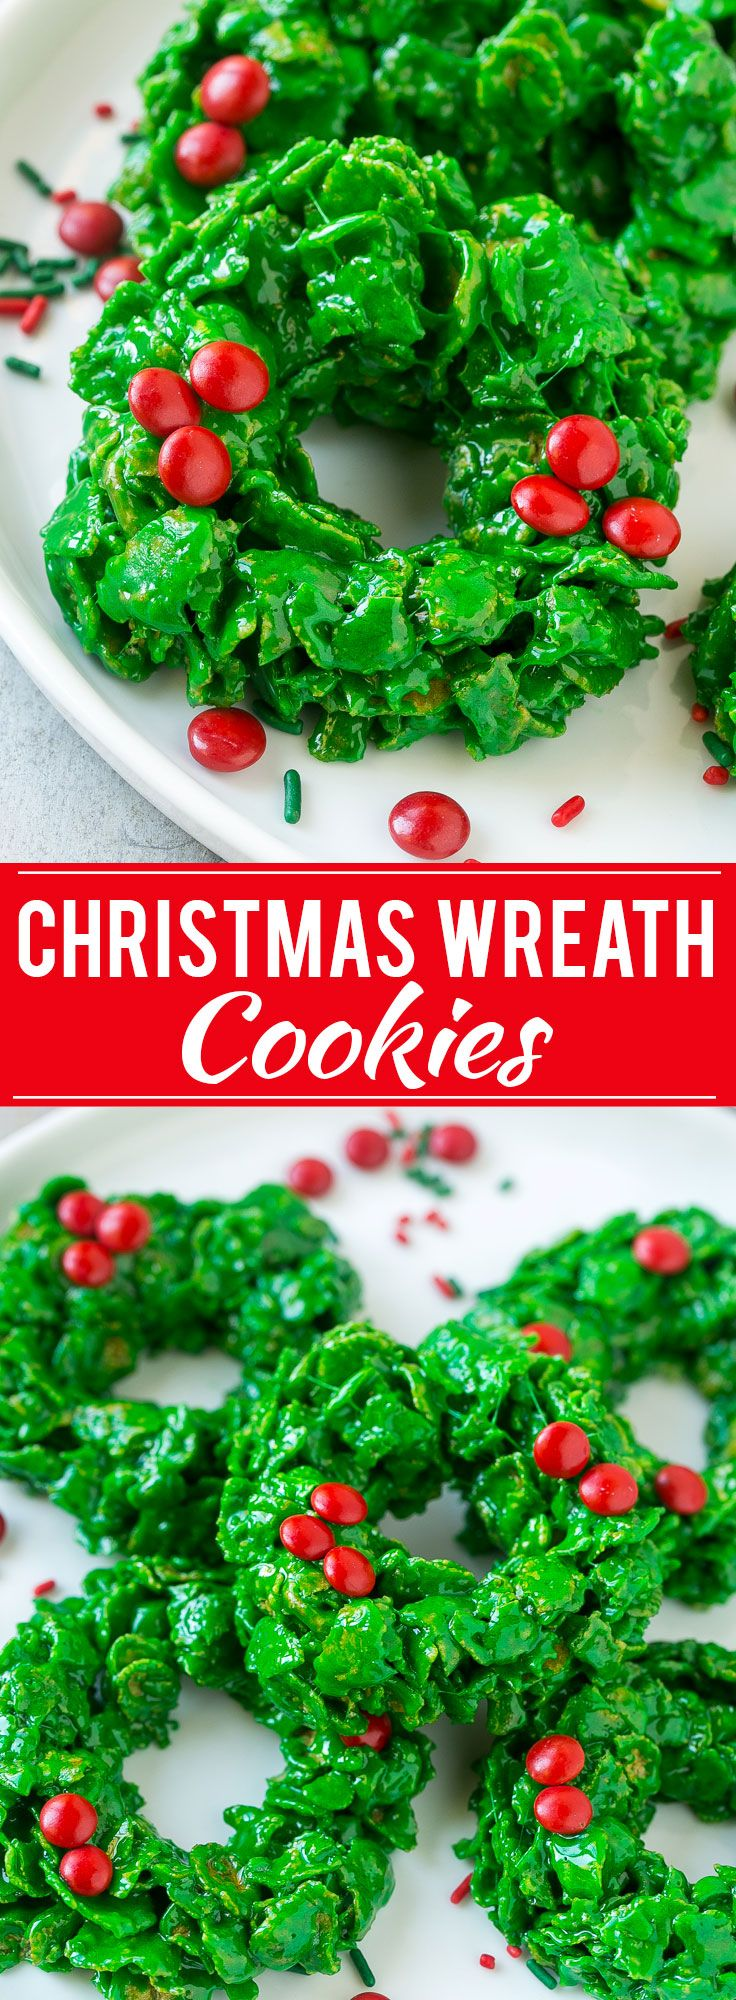 This recipe for no-bake Christmas wreath cookies has just six ingredients and can be made in 15 minutes. These cornflake wreaths are a festive addition to your holiday dessert table!